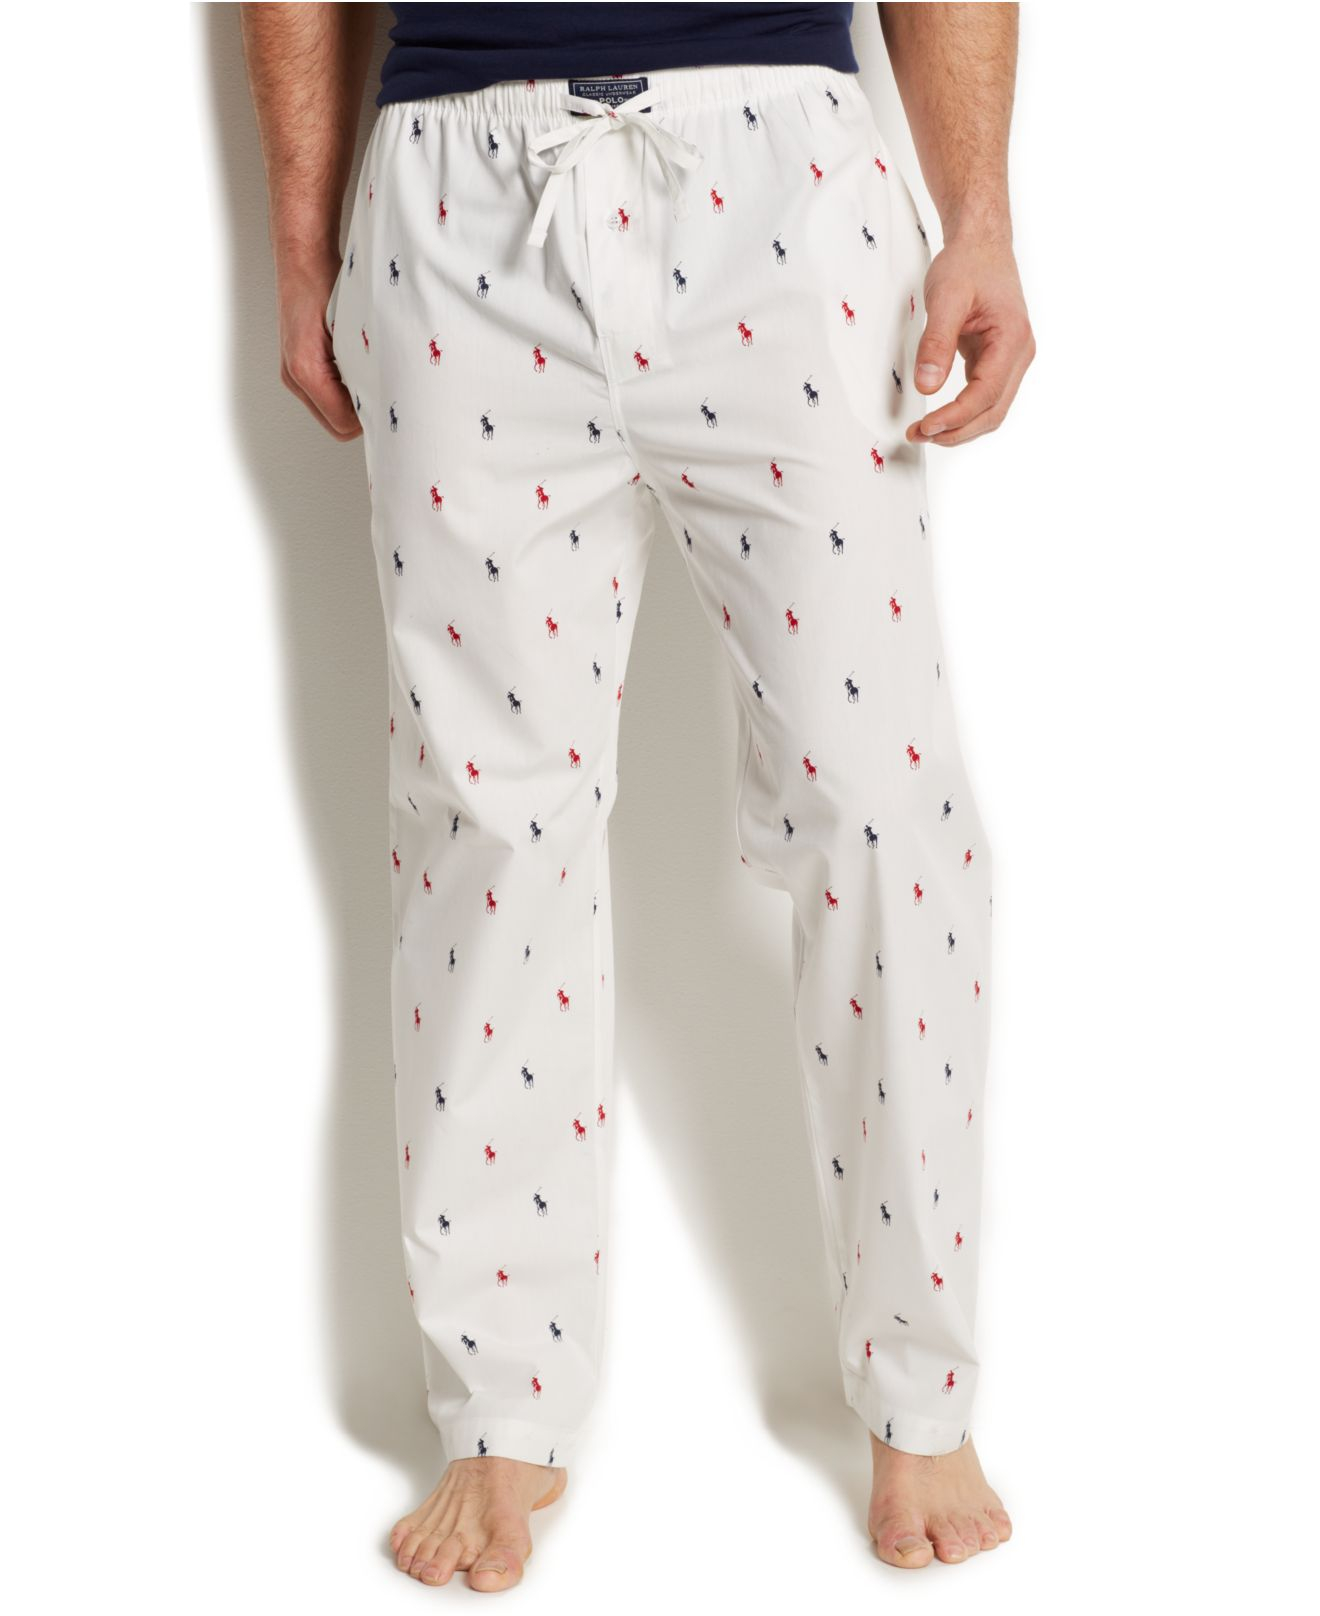 6dc6f3281ac19 Lyst - Polo Ralph Lauren Allover Pony Pajama Pants in White for Men